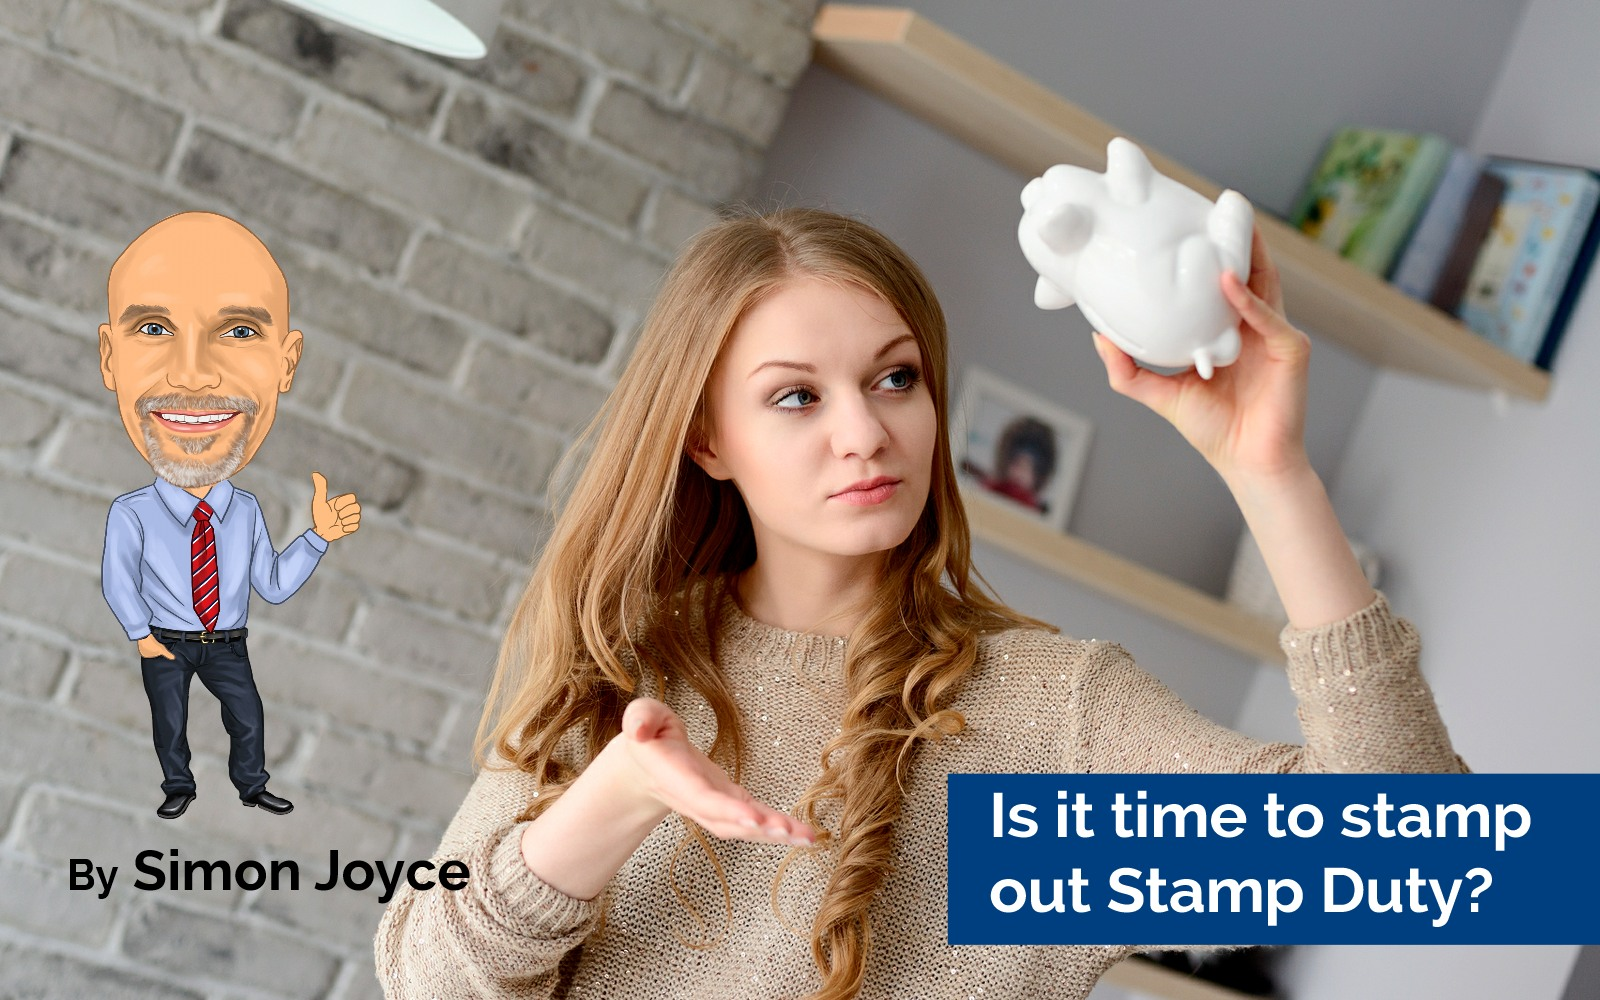 Time to Stamp Out Stamp Duty?